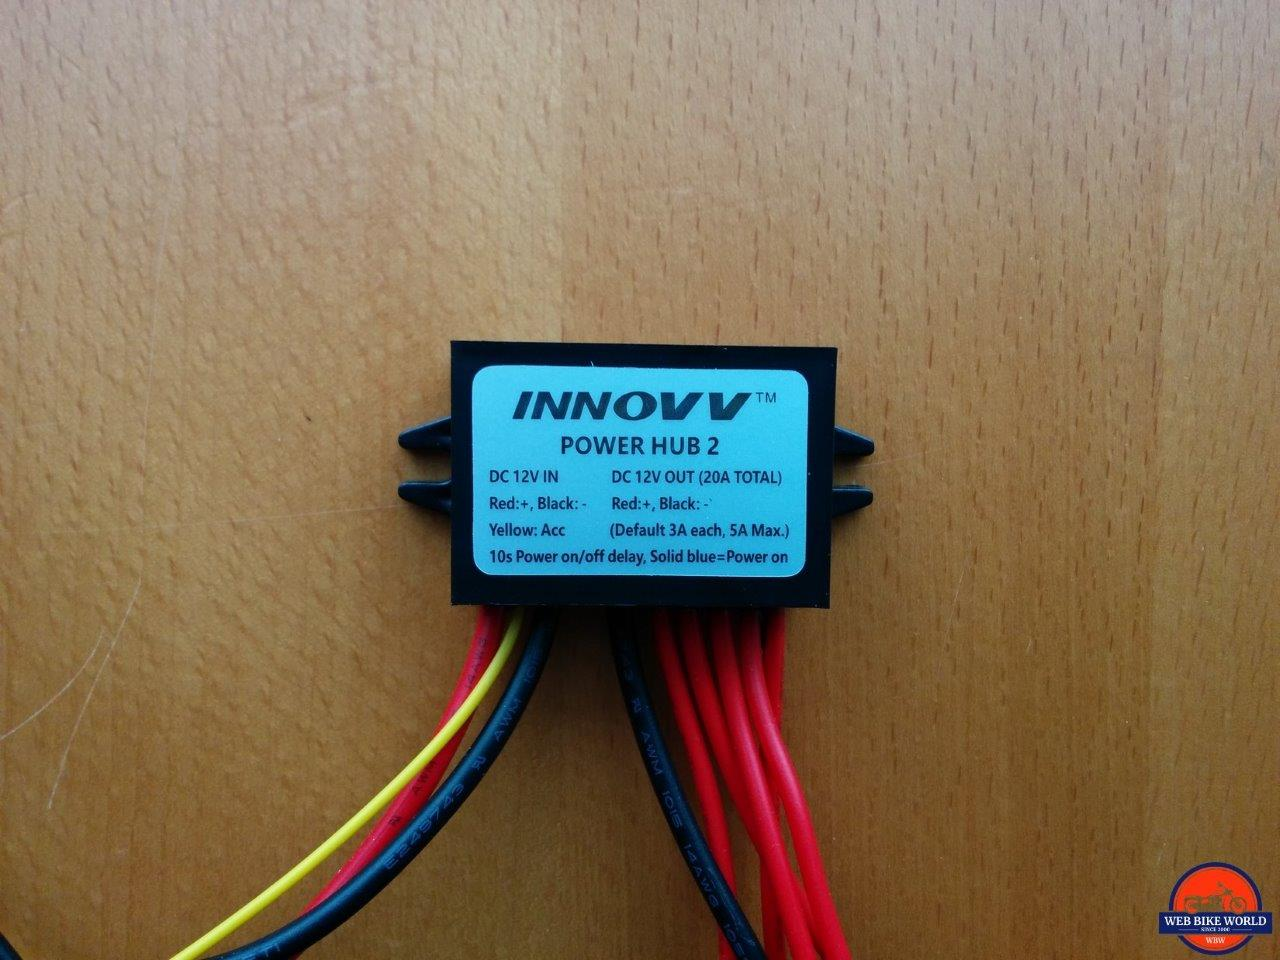 INNOVV Power Hub 2 Full View with Label